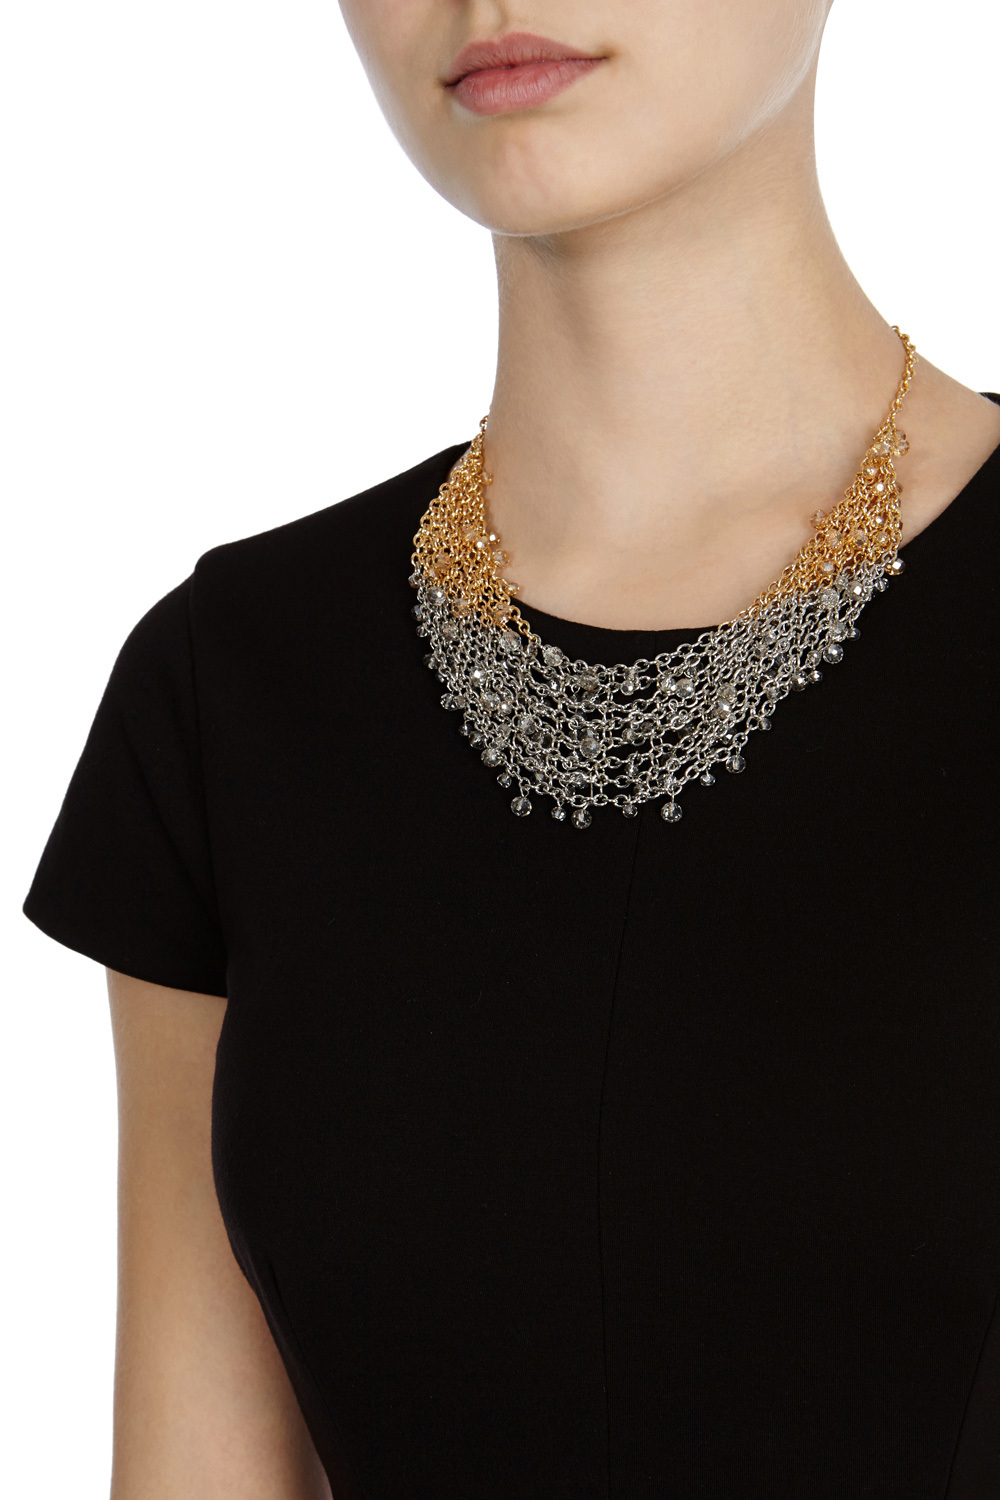 Althea Wide Statement Necklace - predominant colour: silver; occasions: evening, creative work; length: short; size: standard; material: chain/metal; finish: metallic; style: bib/statement; season: s/s 2016